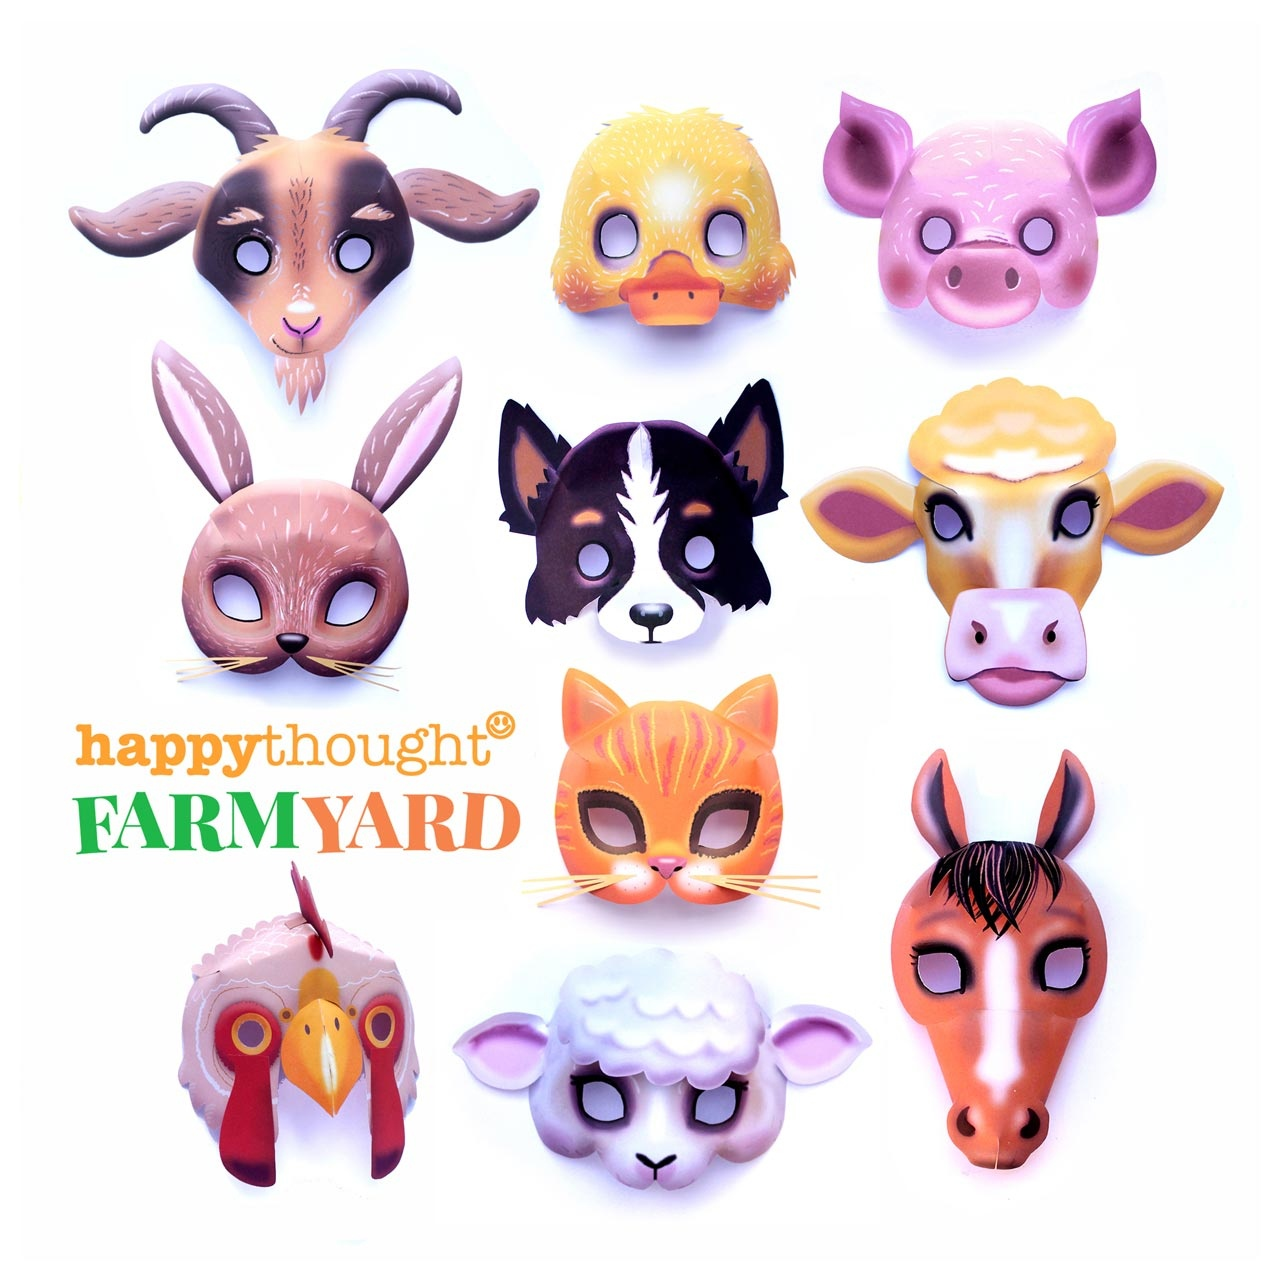 Coloring: Excelent Printable Animal Pictures Image Inspirations. - Free Printable Farm Animal Cutouts